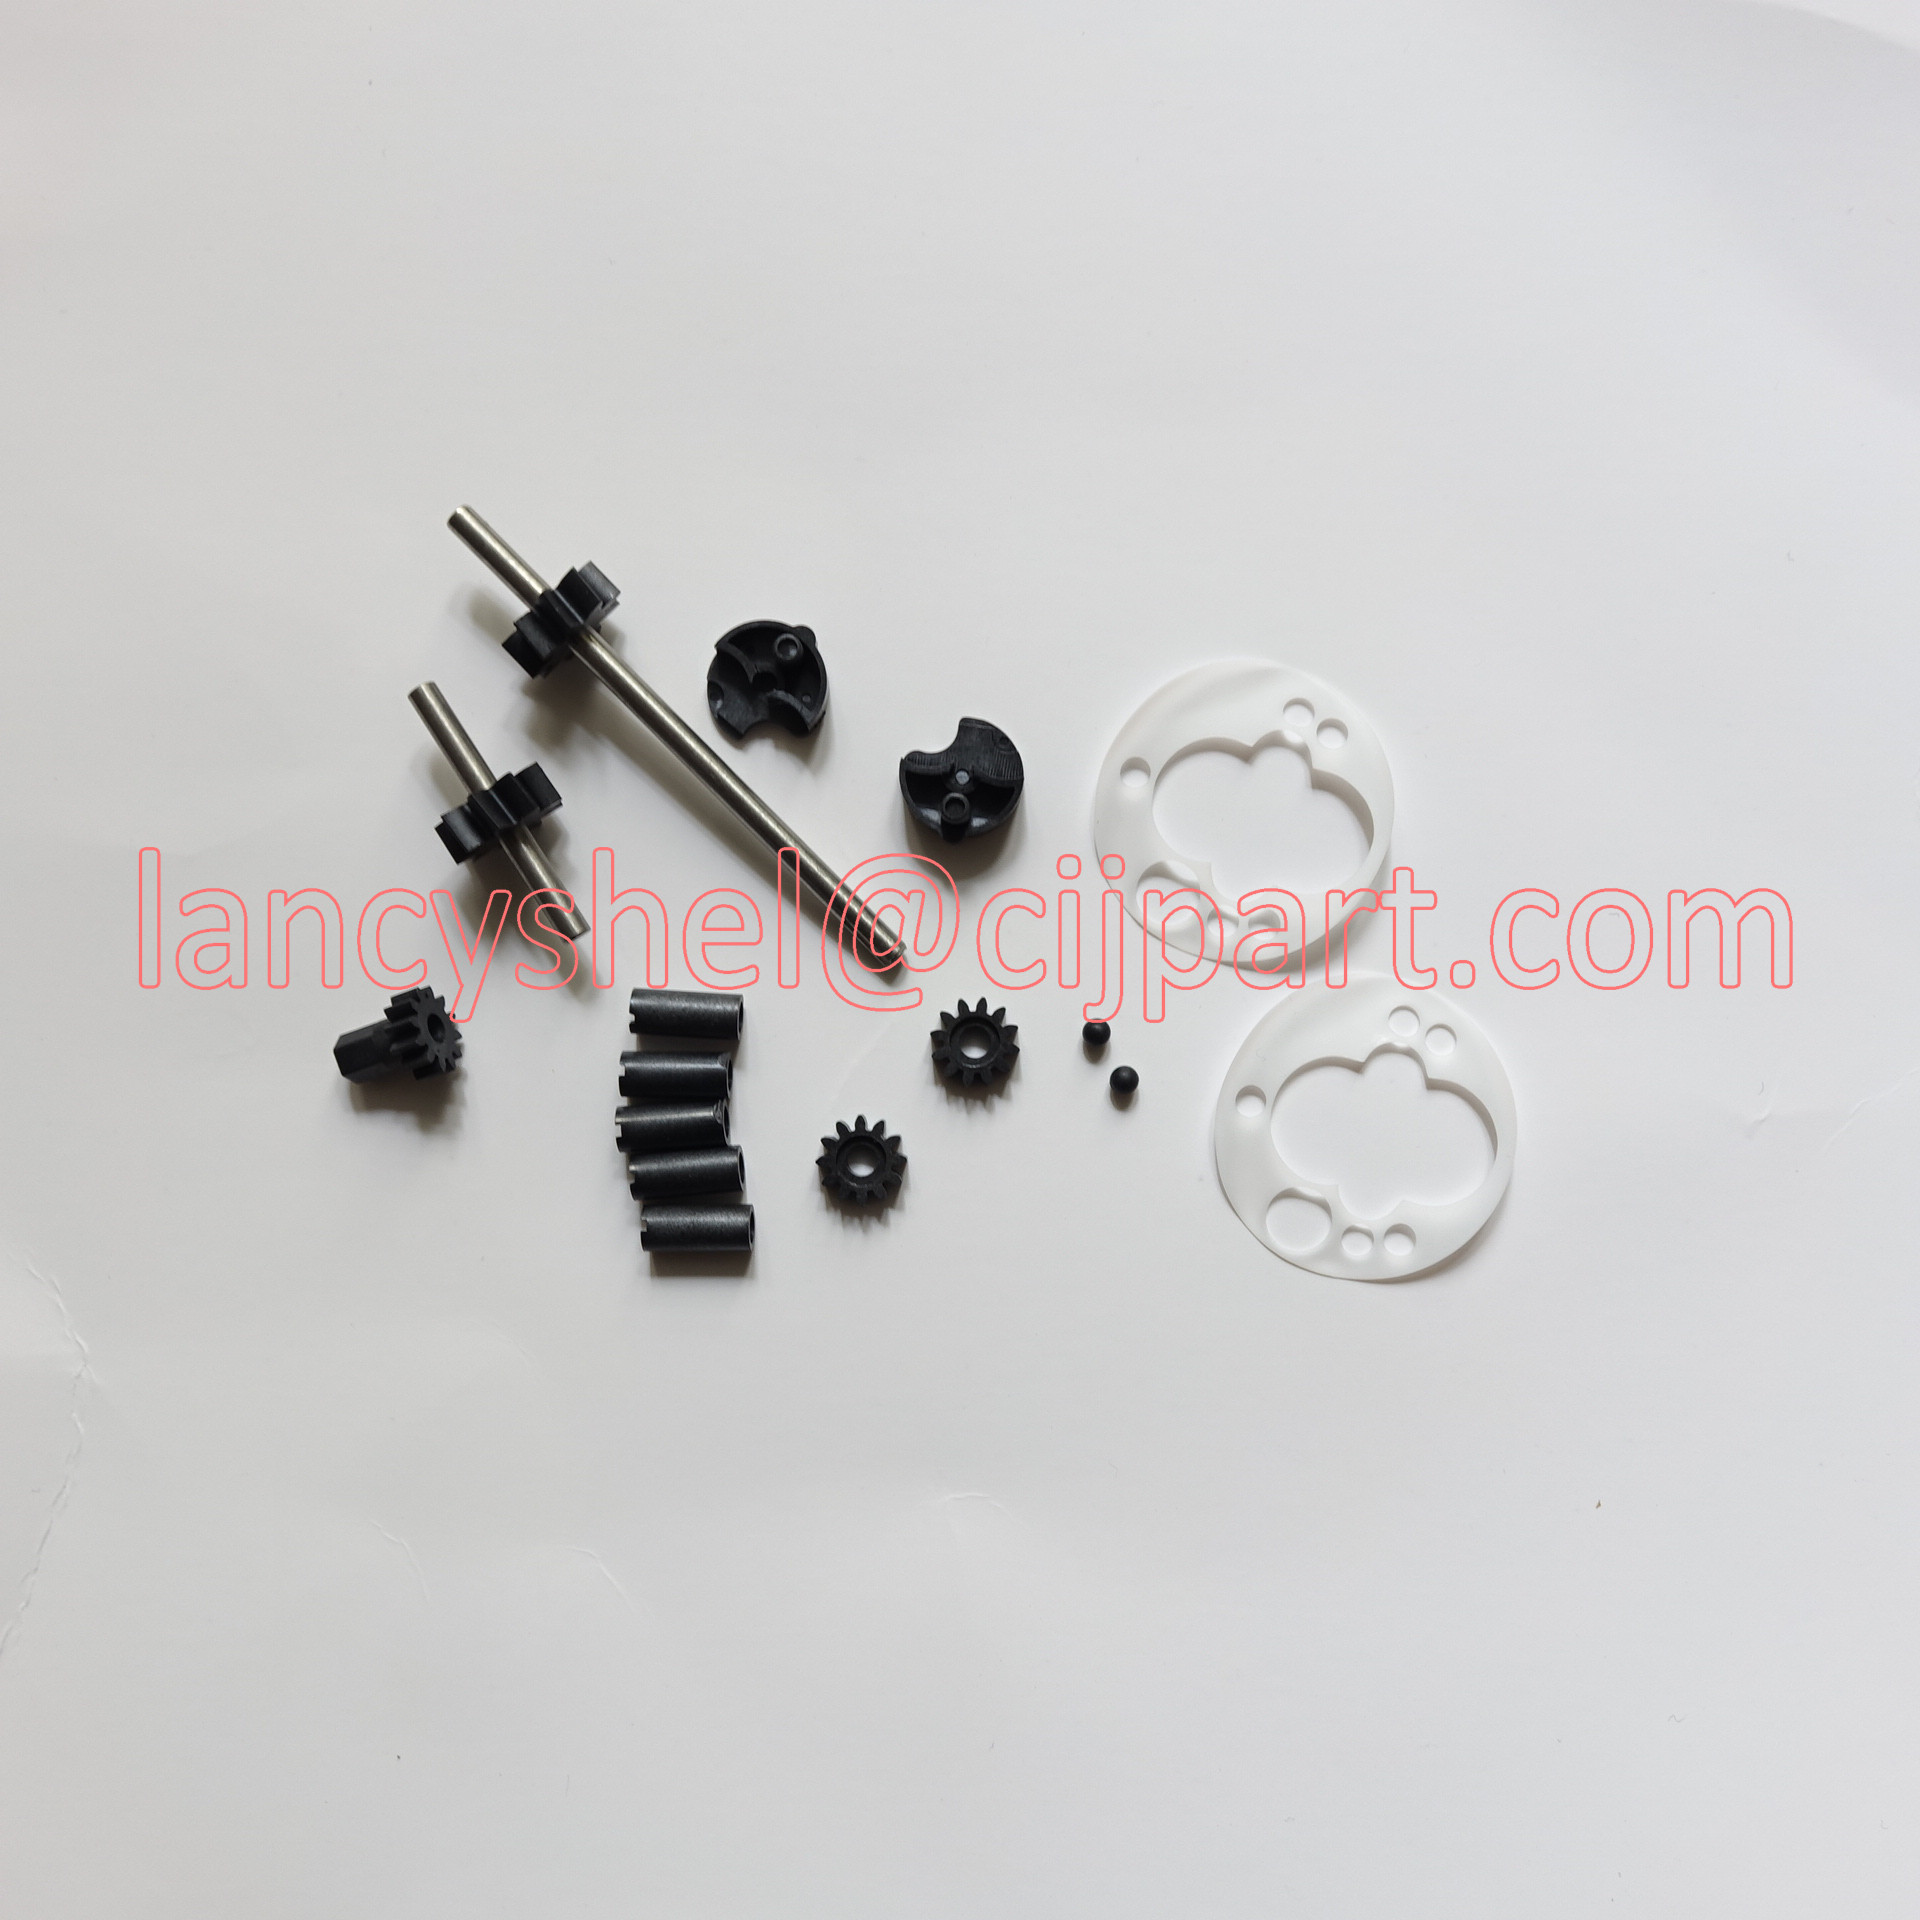 DOMINO Double Head Pump Repair Kit for Domino A100 A200 A300